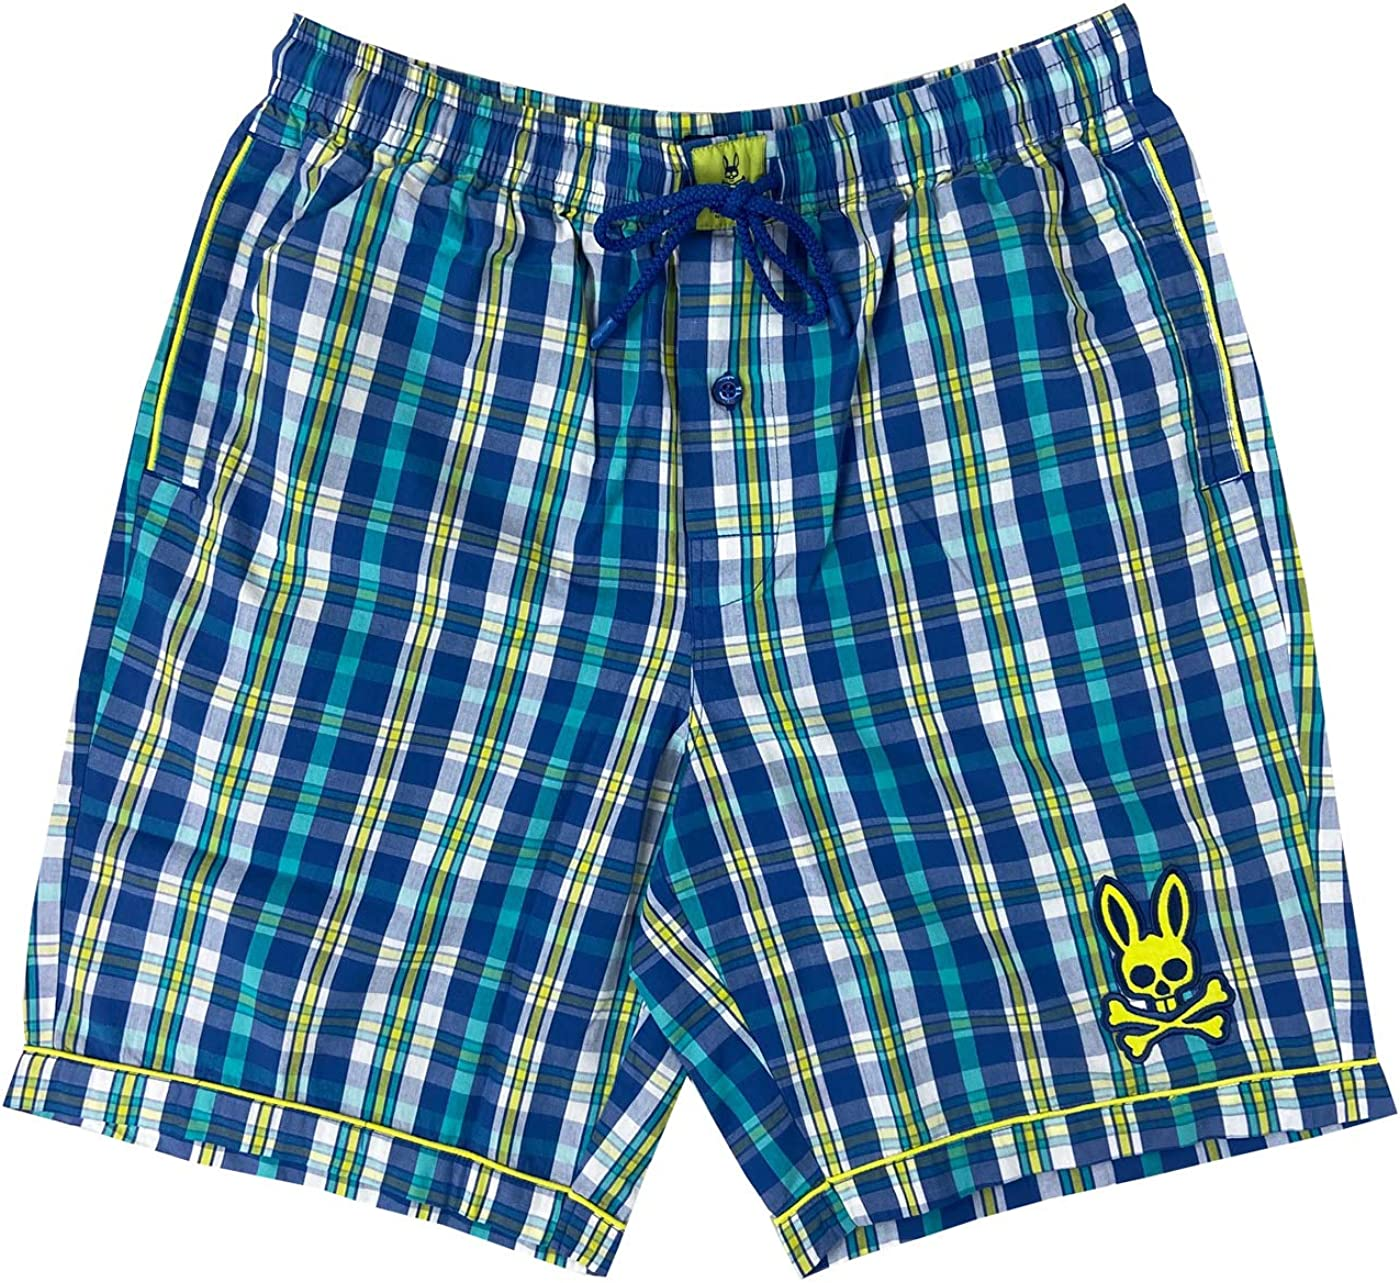 Psycho Bunny Men's Printed Lounge Woven Jam Shorts with Pockets